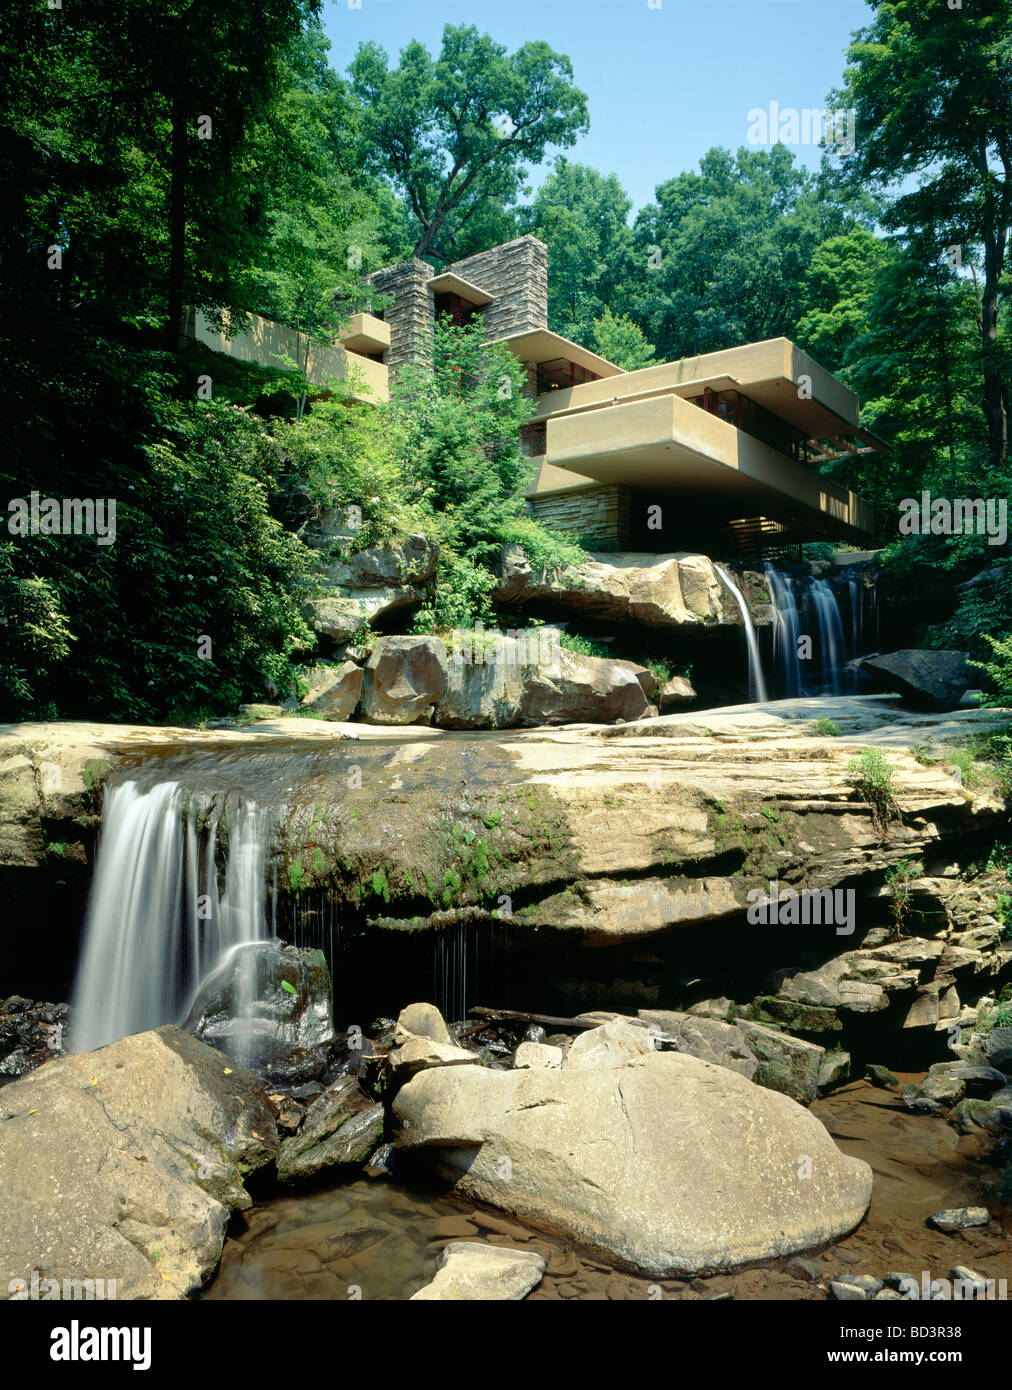 Fallingwater Frank Lloyd Wright Designed Home For The